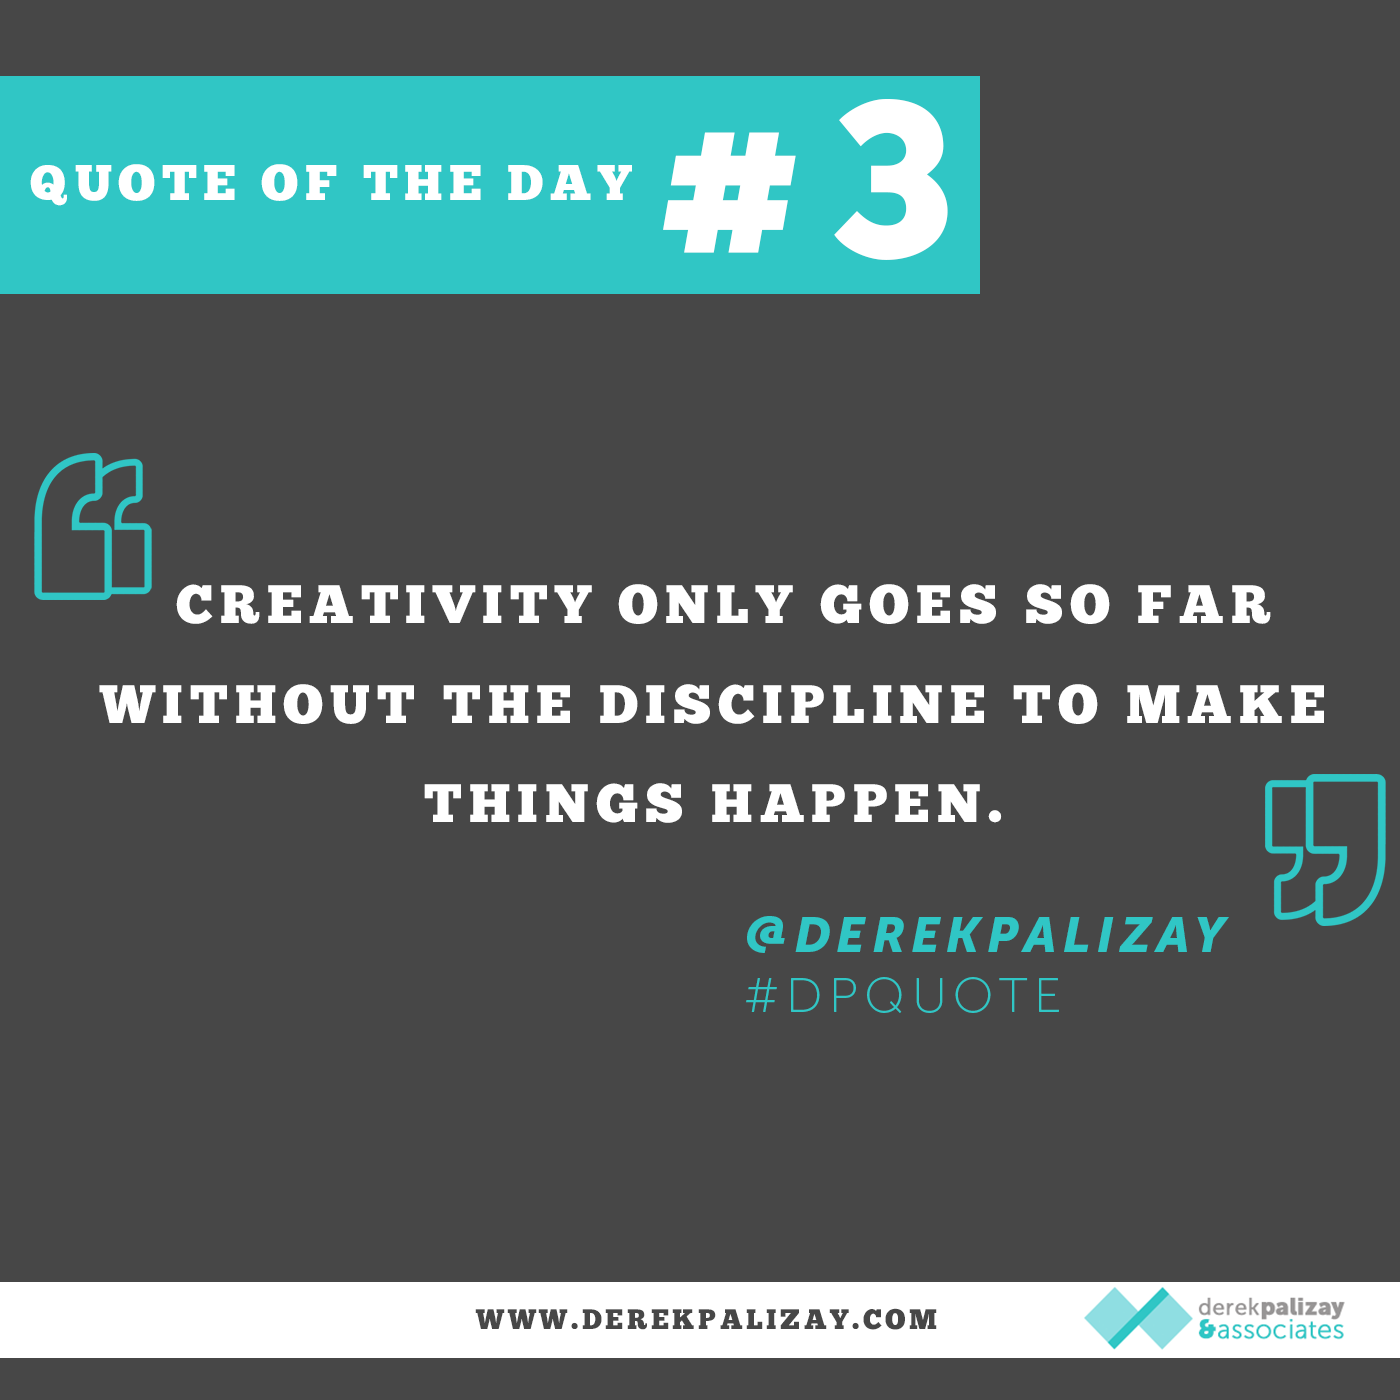 Creativity Only Goes So Far Without The Discipline To Make Things Happen.